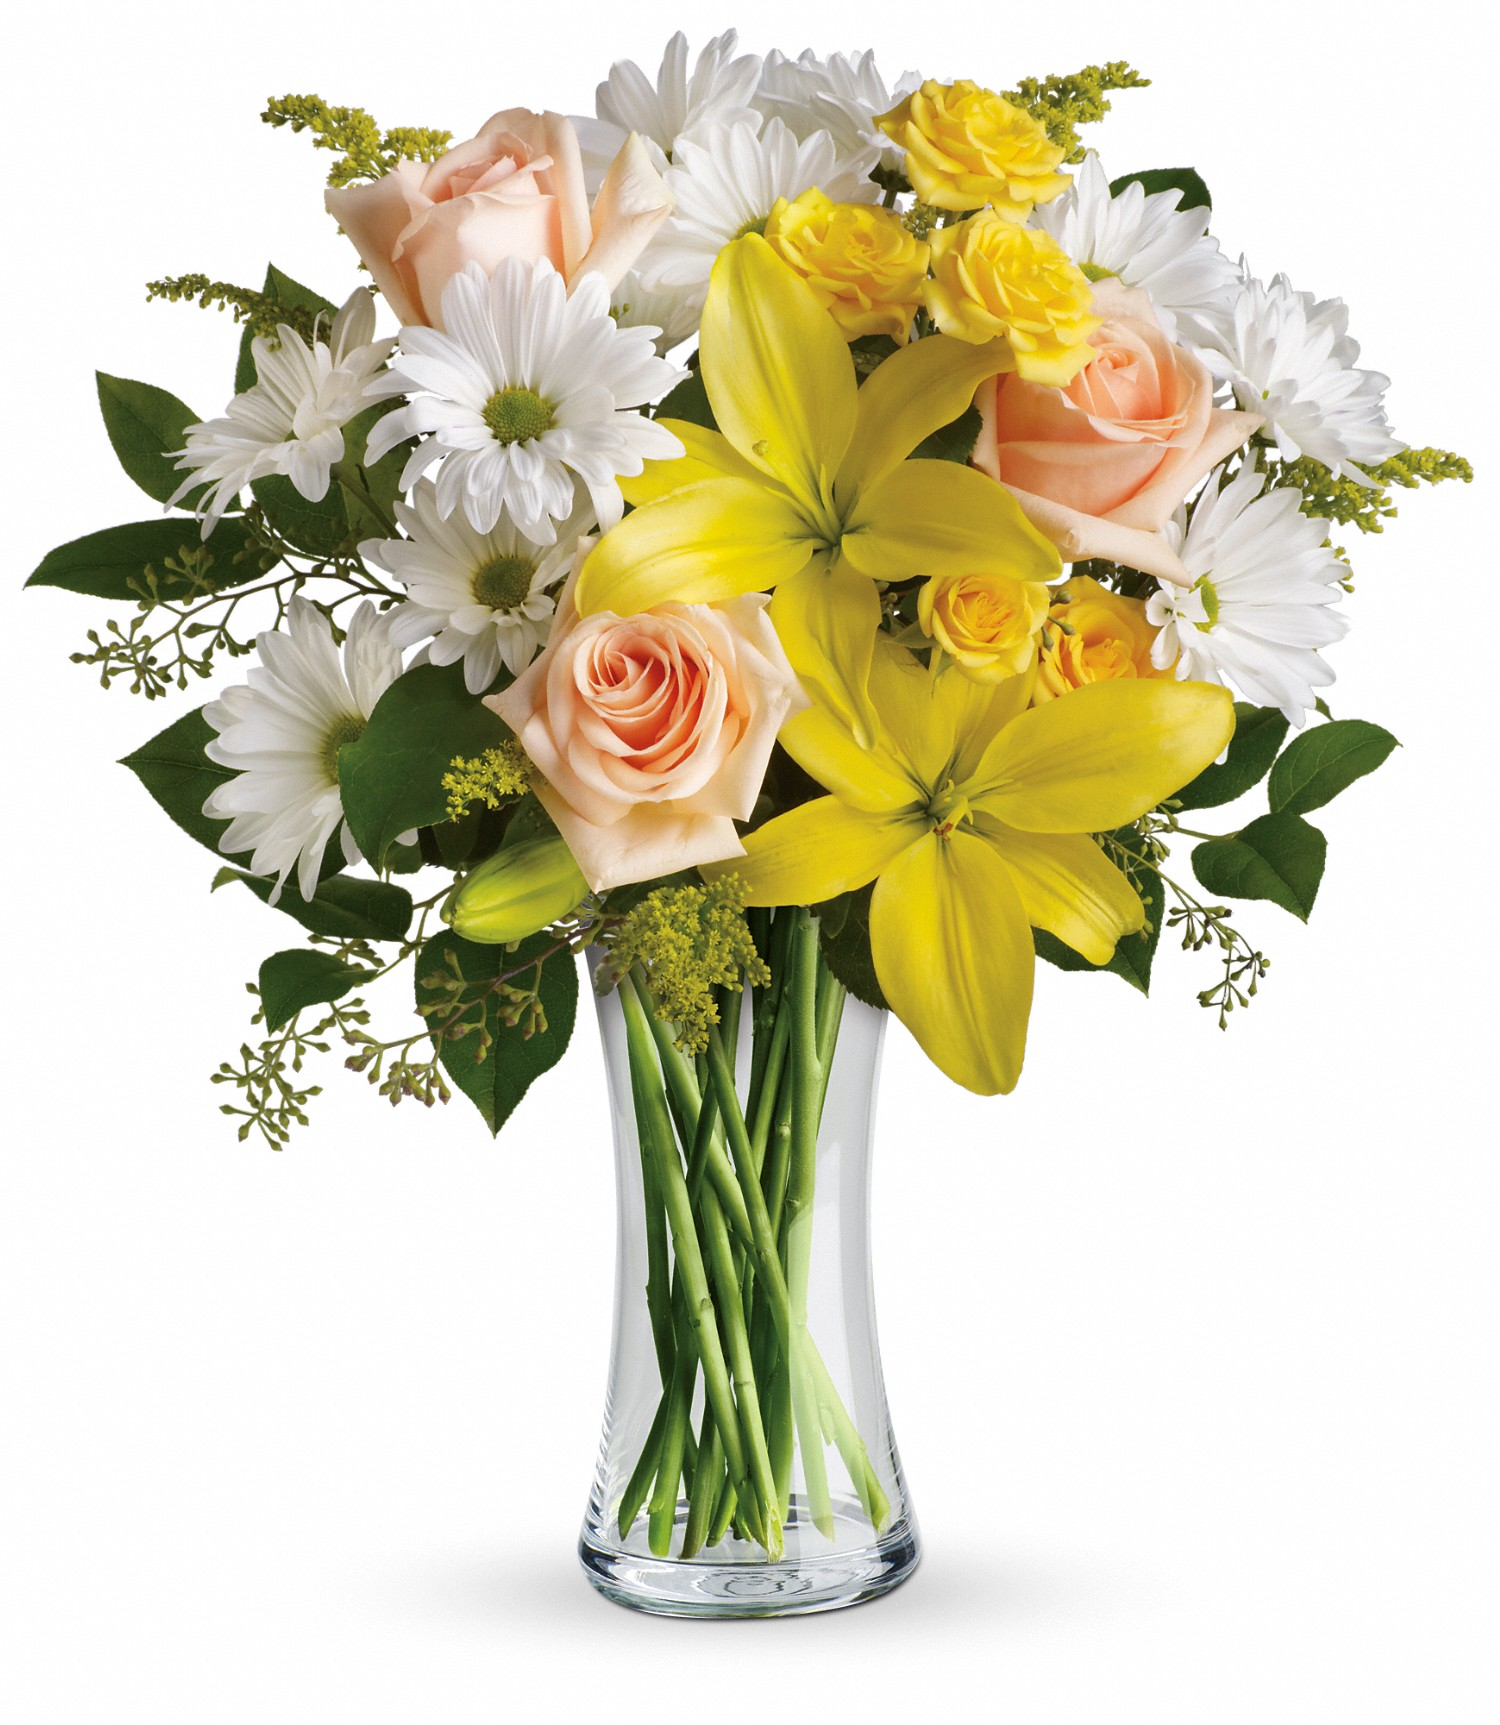 Keirsteads flowers and gifts a family tradition since 1925 whatever the weather this sunny bouquet of yellow peach and white flowers will brighten any day instantly perfect for a birthday thank you or just izmirmasajfo